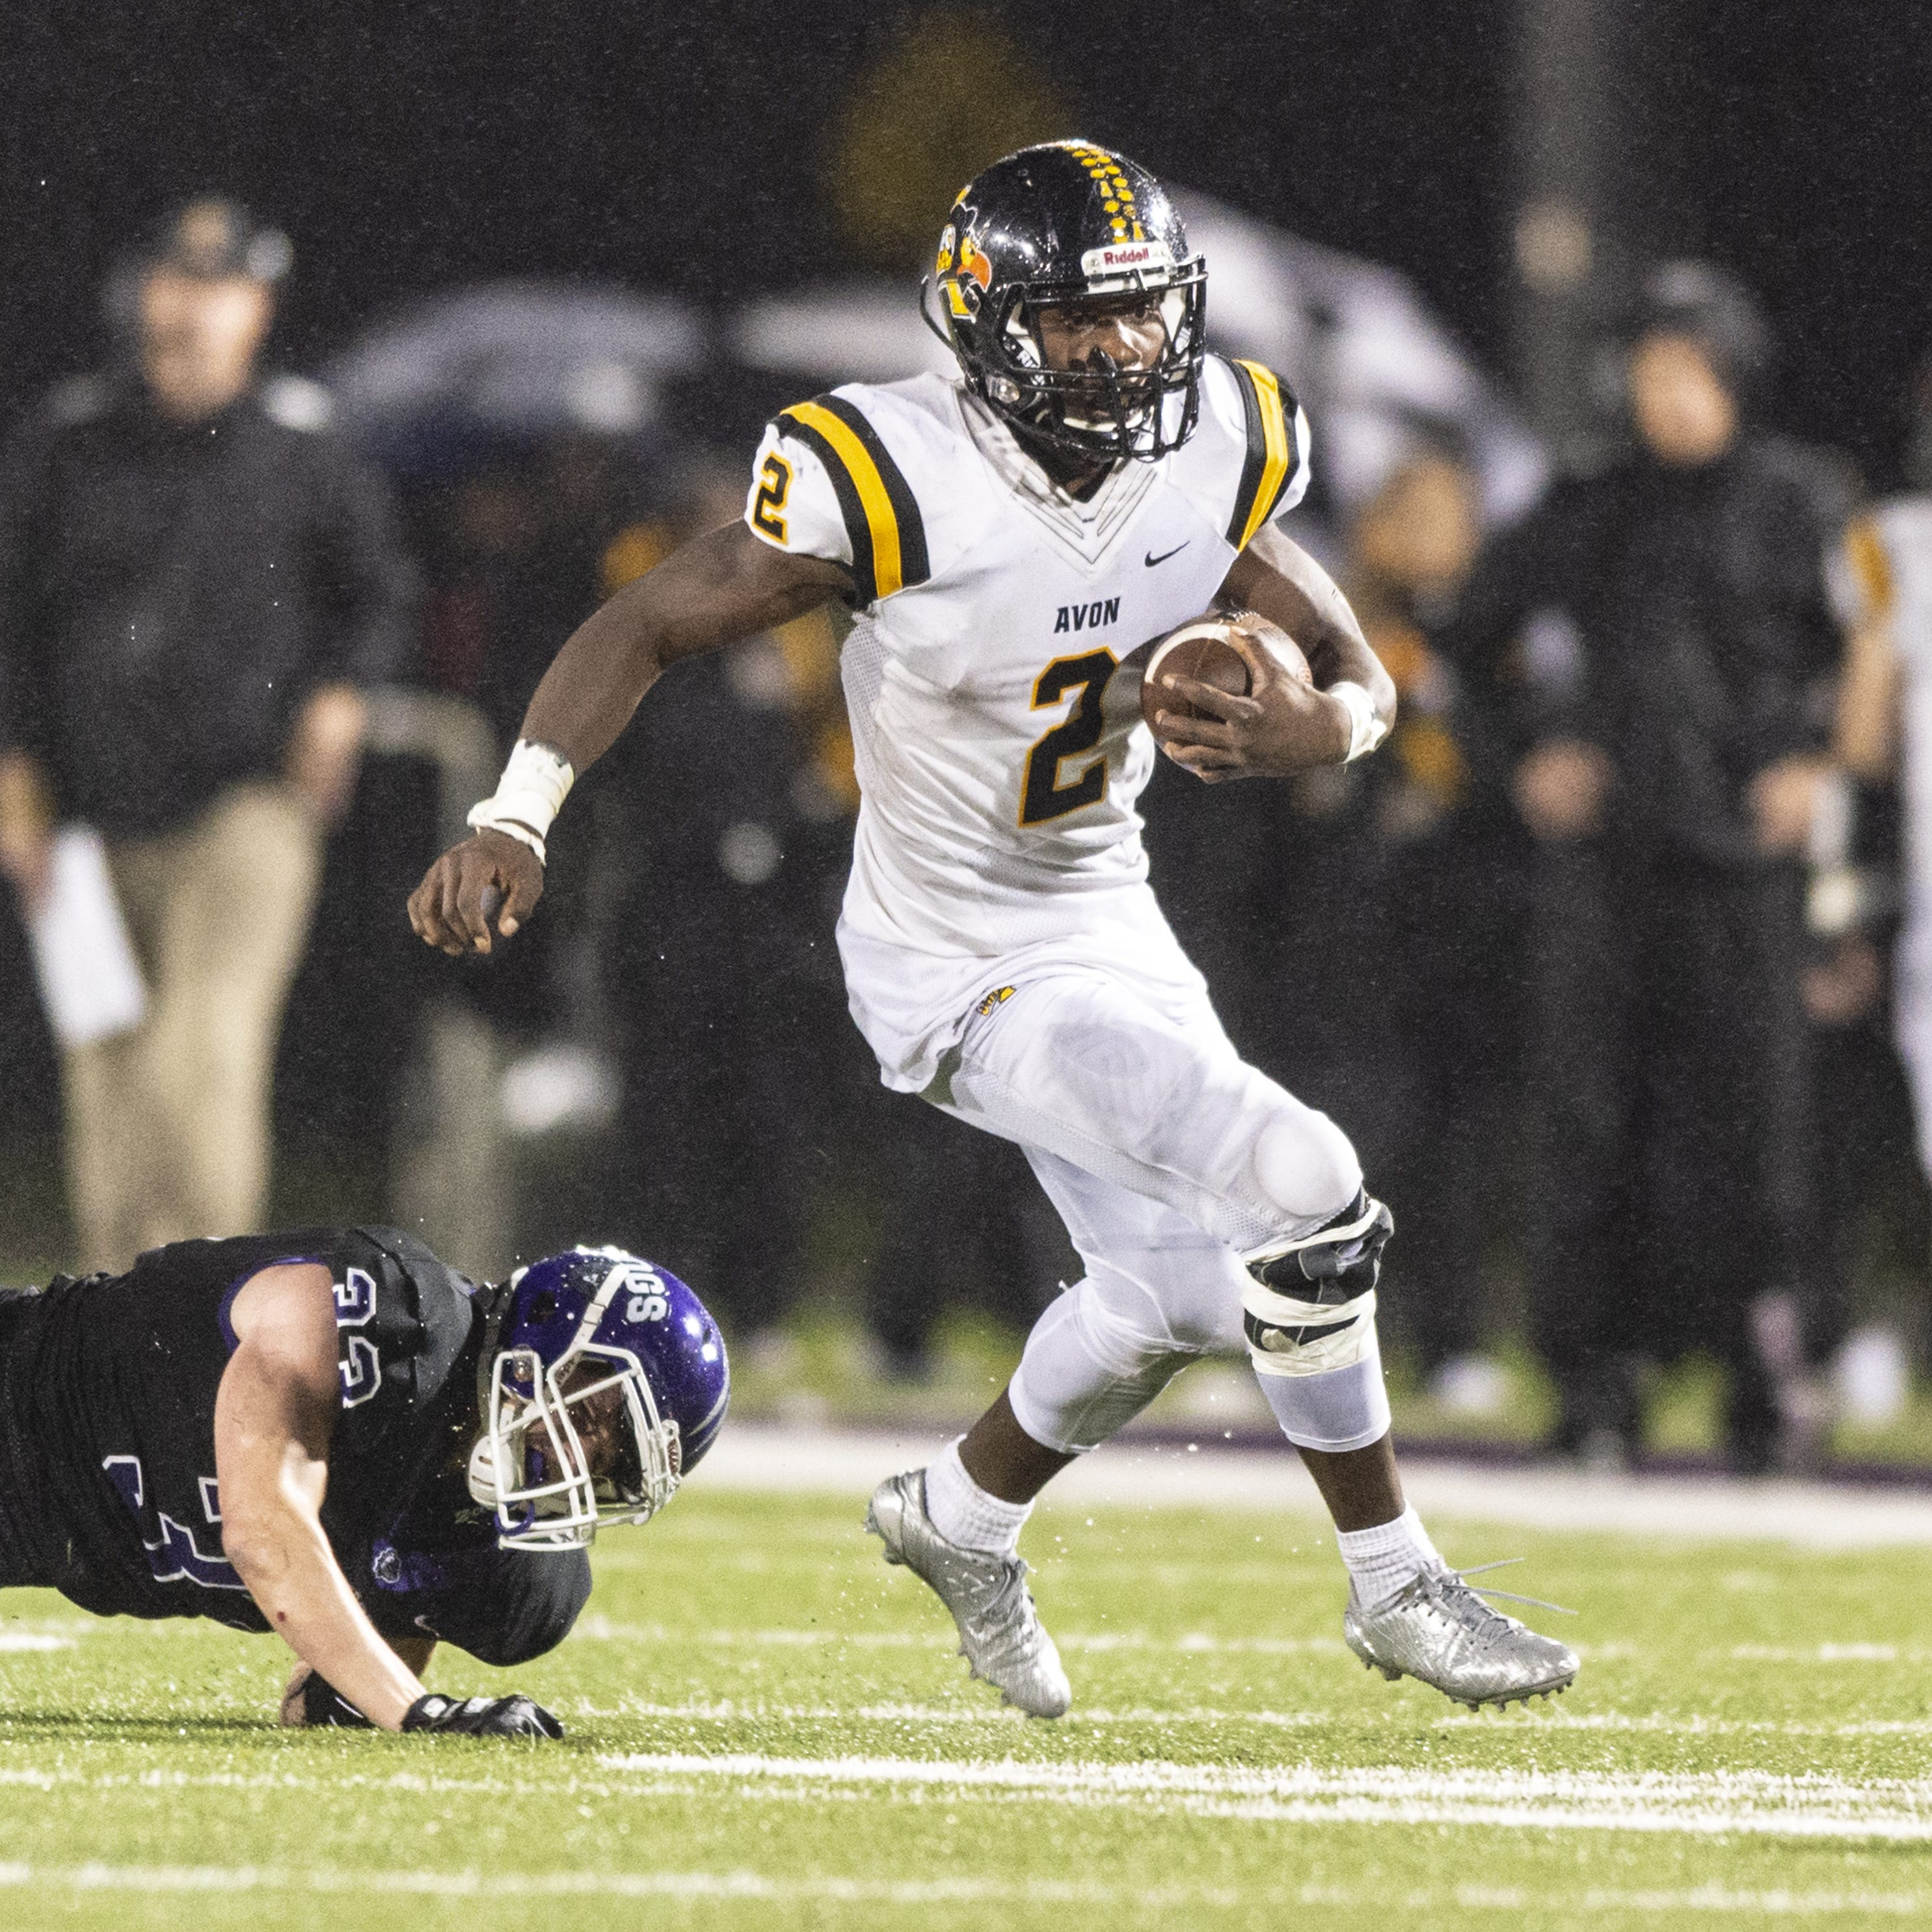 Avon RB Sampson James switches to IU football after decommitting from Ohio State